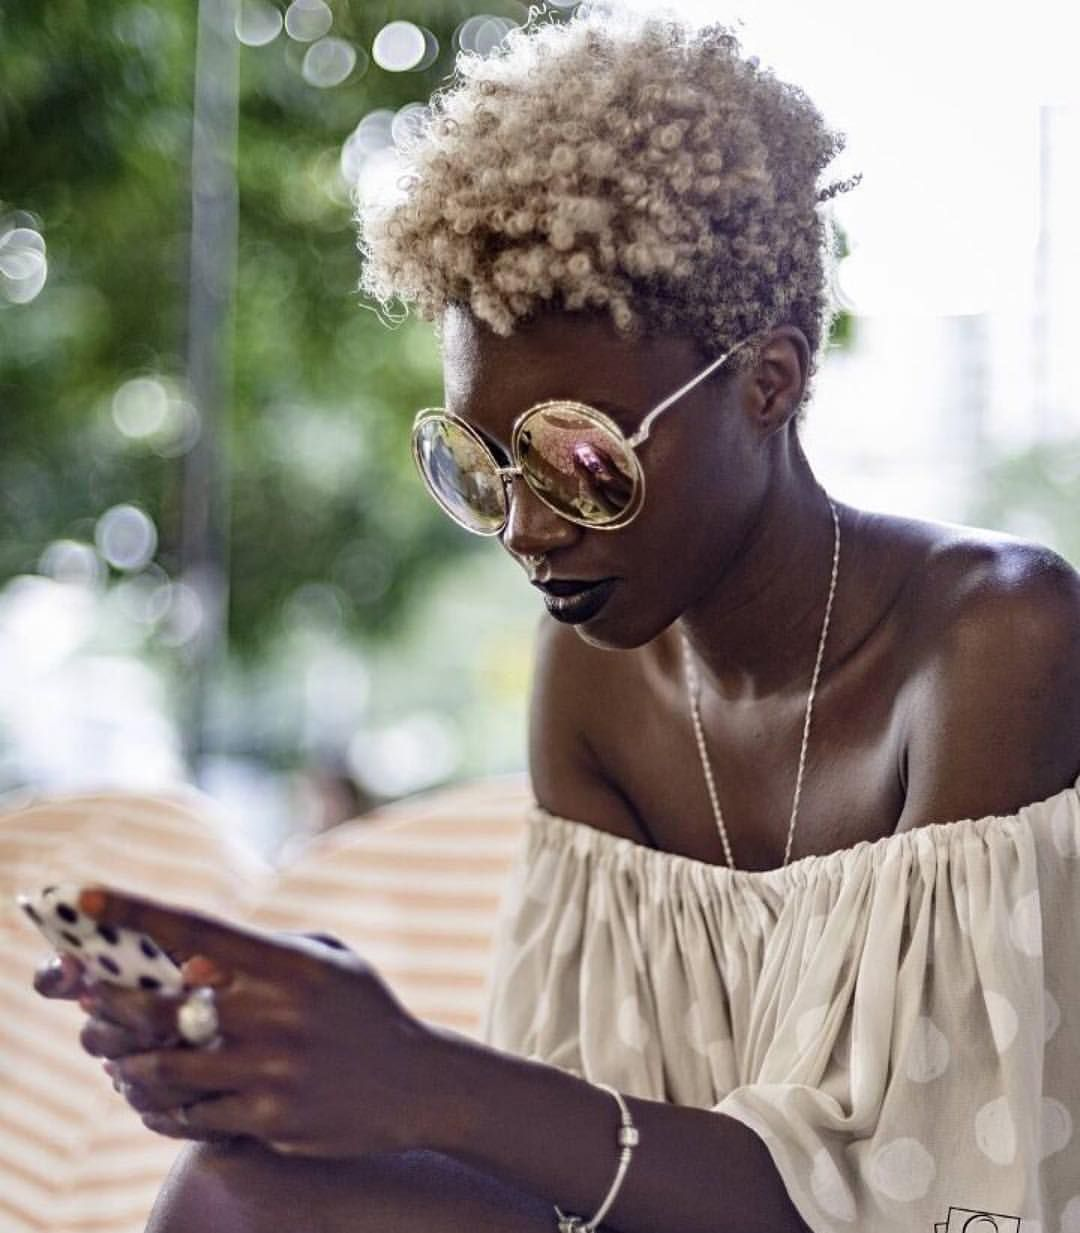 Bl Black Hairstyles For Short Hair Growing Out - Island naturals au natural natural hair hair afro love thy fro protective styles